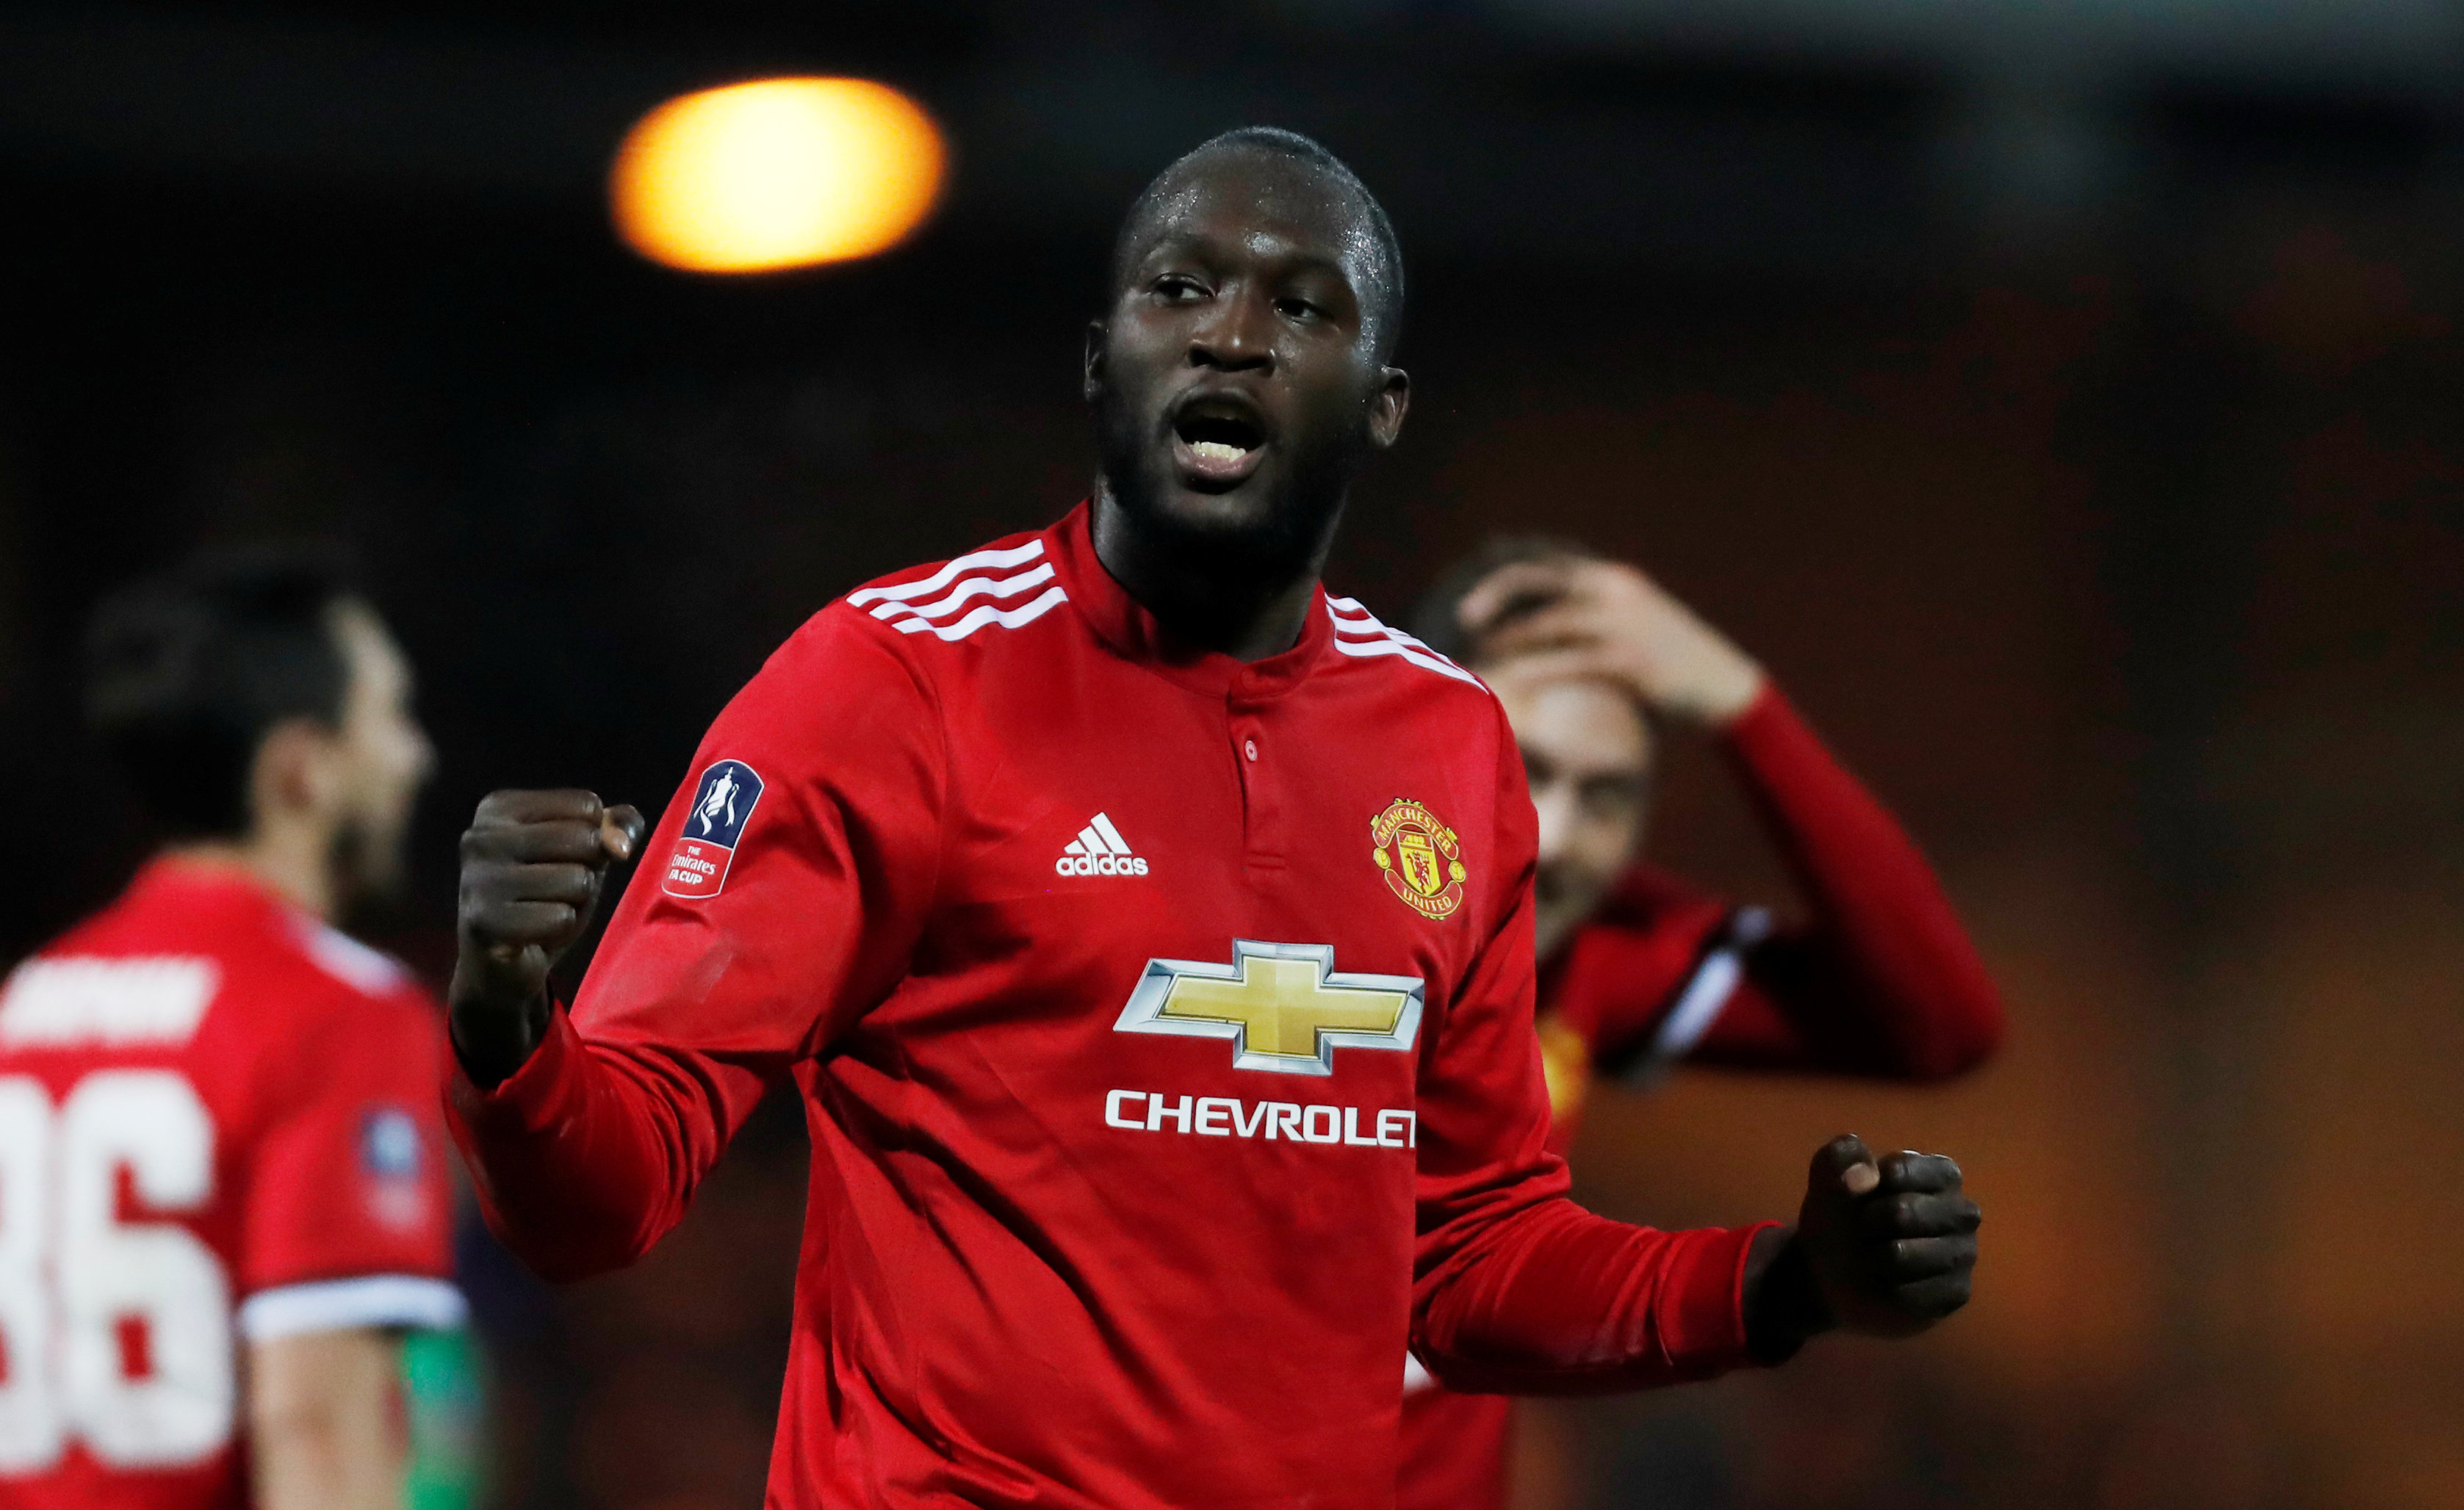 Soccer Football - FA Cup Fourth Round - Yeovil Town vs Manchester United - Huish Park, Yeovil, Britain - January 26, 2018   Manchester United's Romelu Lukaku celebrates scoring their fourth goal   Action Images via Reuters/Paul Childs